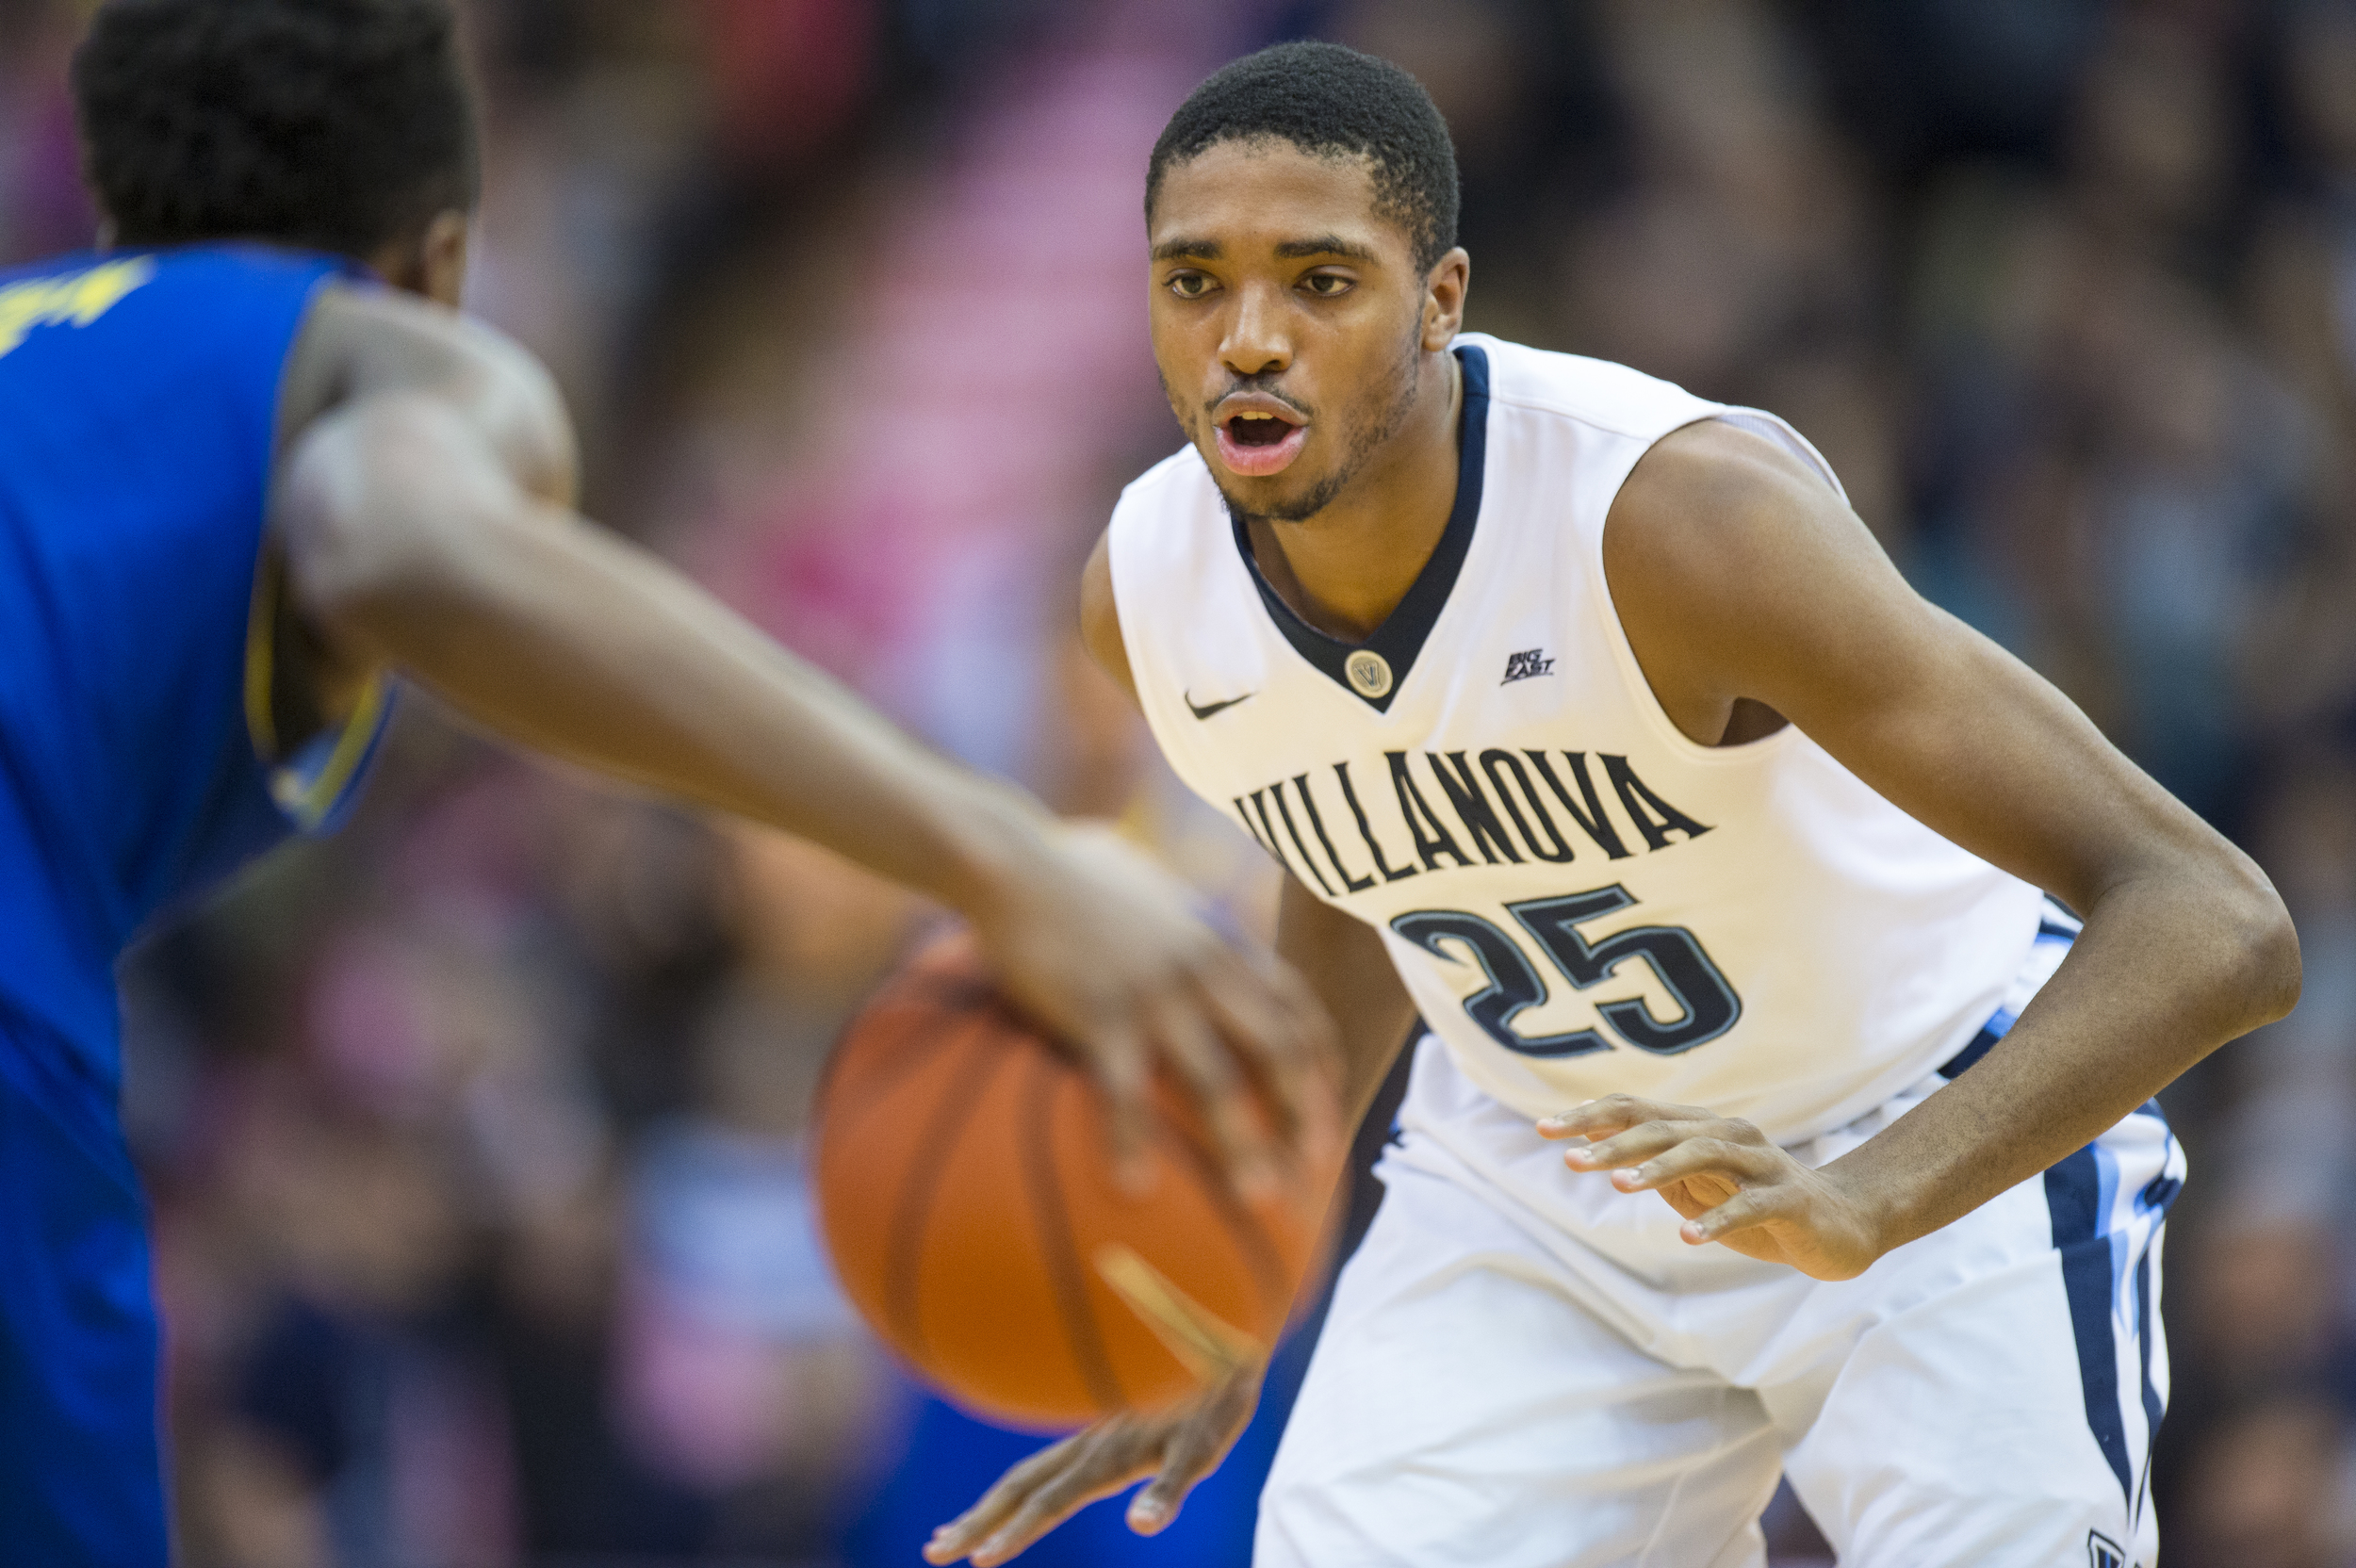 22 December 2015: Villanova Wildcats guard Mikal Bridges (25) defends the lane during the NCAA basketball game between the Delaware Blue Hens and the Villanova Wildcats played at the Pavillion in Villanova, PA. (Photo by Gavin Baker/Icon Sportswire)